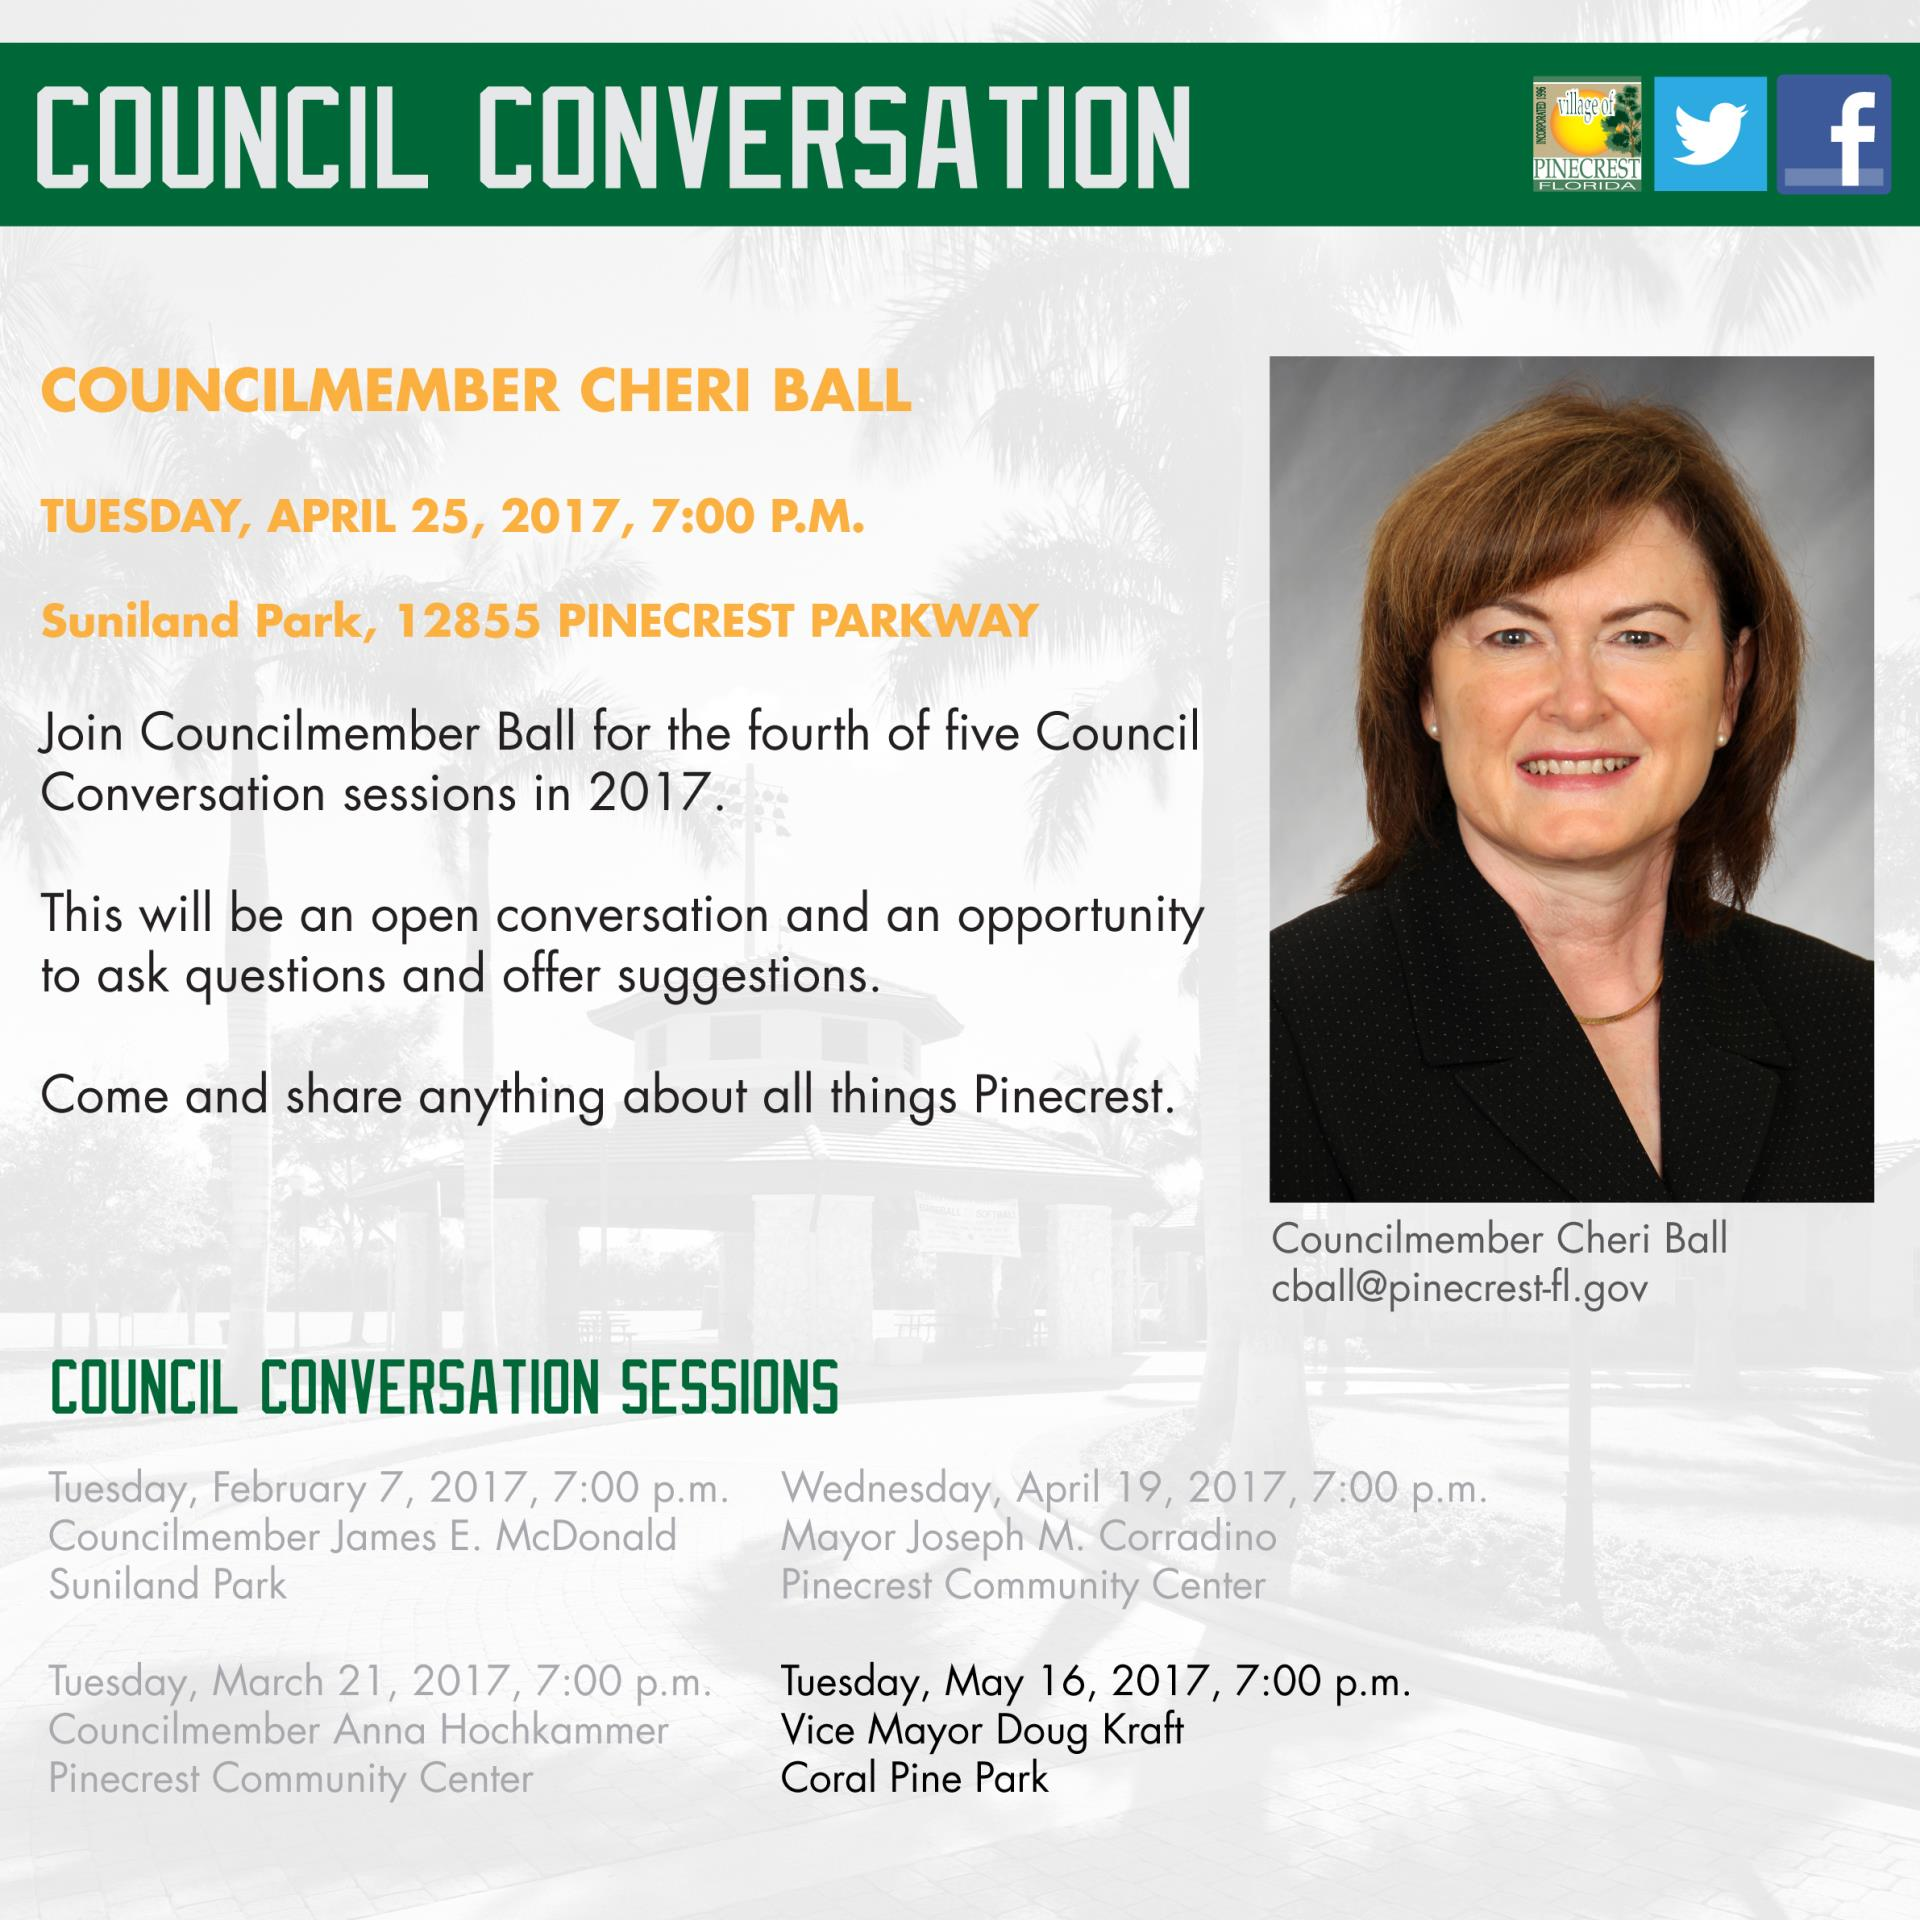 Council Conversation with Councilmember Ball